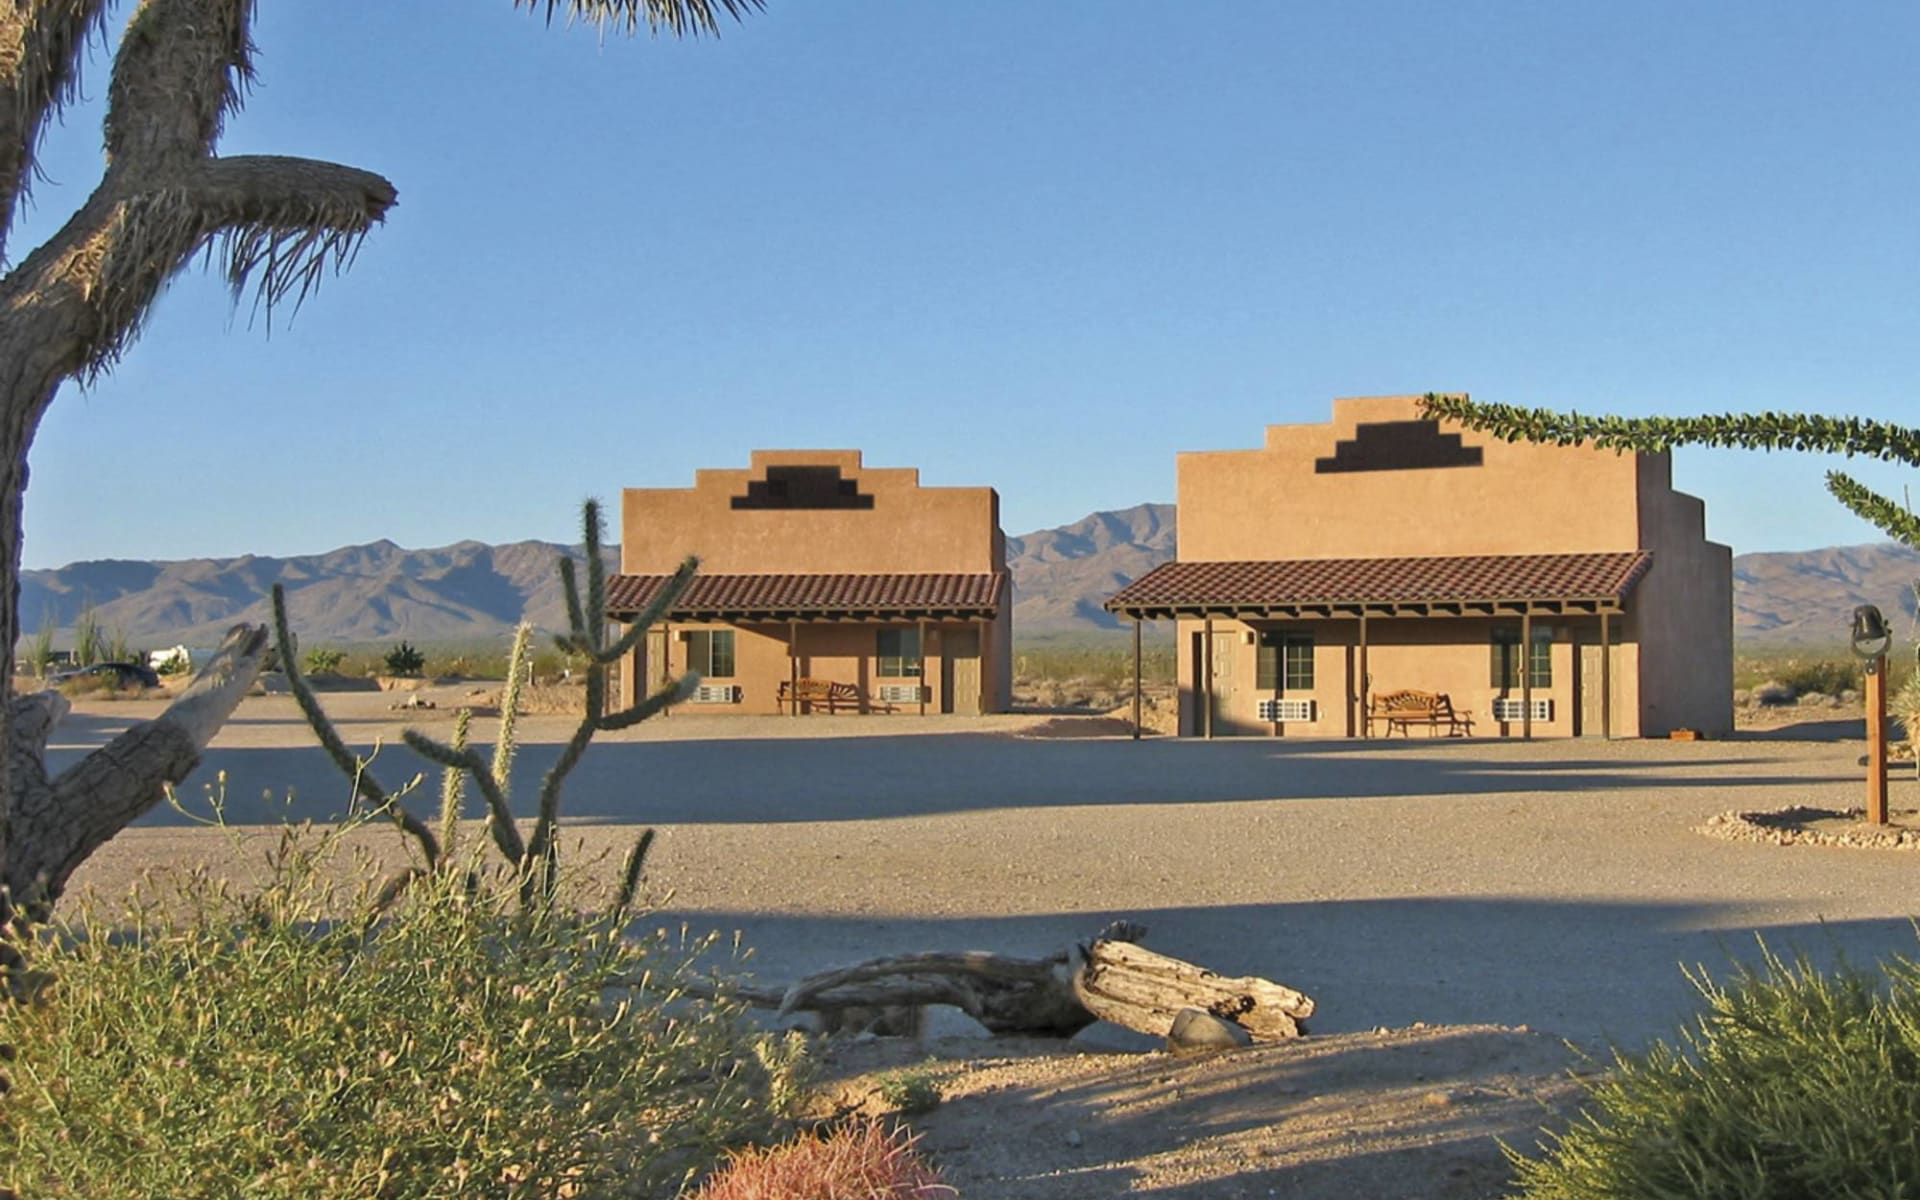 Stagecoach Trails Guest Ranch in Yucca: exterior stagecoach trails guest ranch yucca ranches kaktus